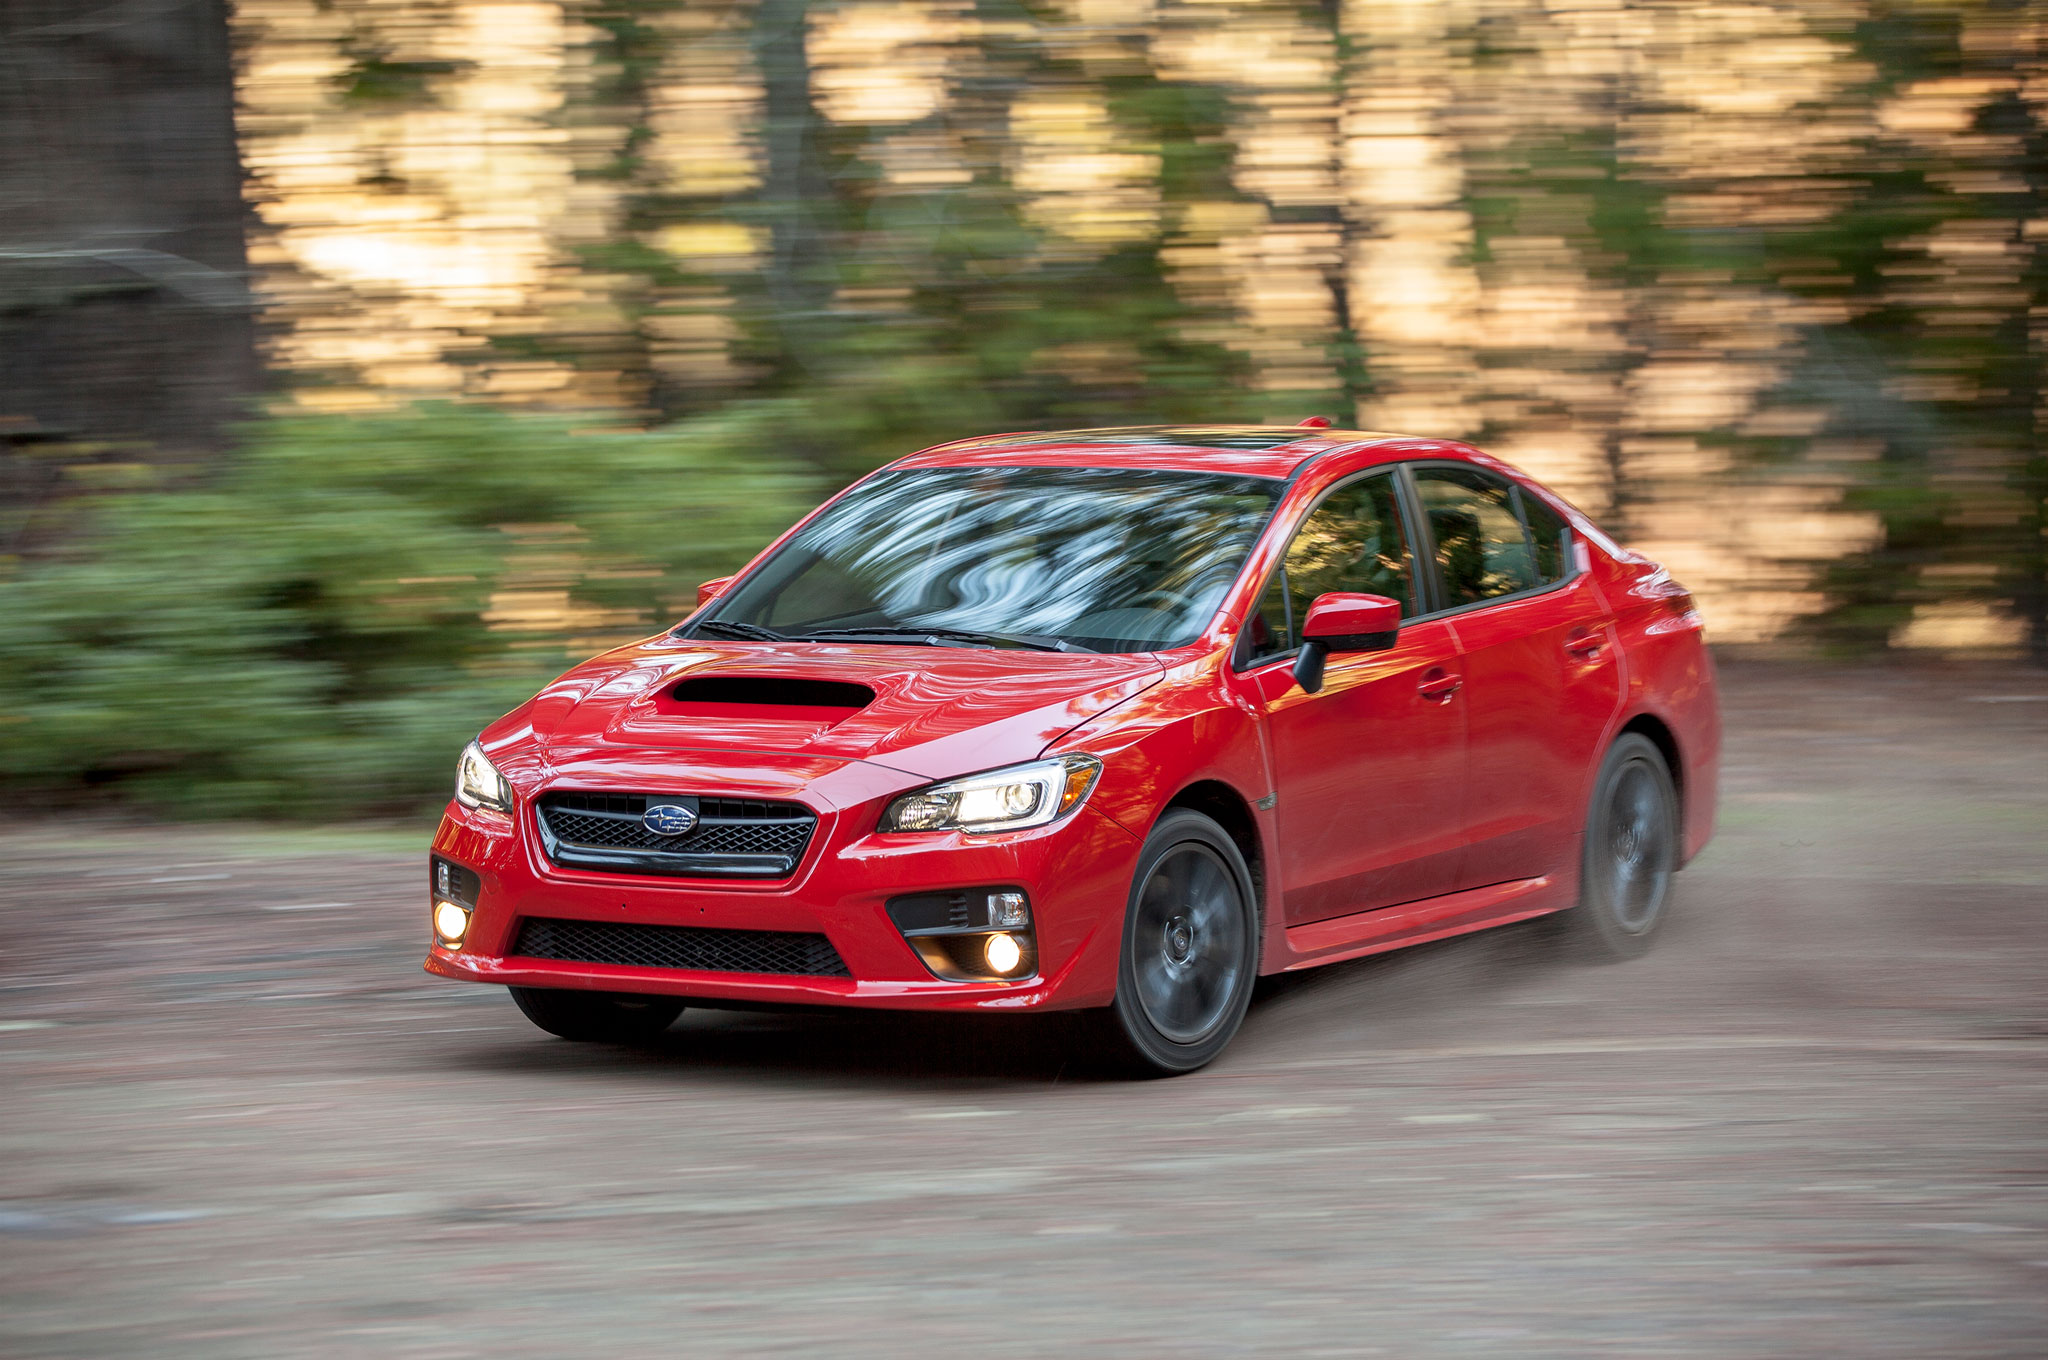 2015 Subaru WRX Front Left View 81